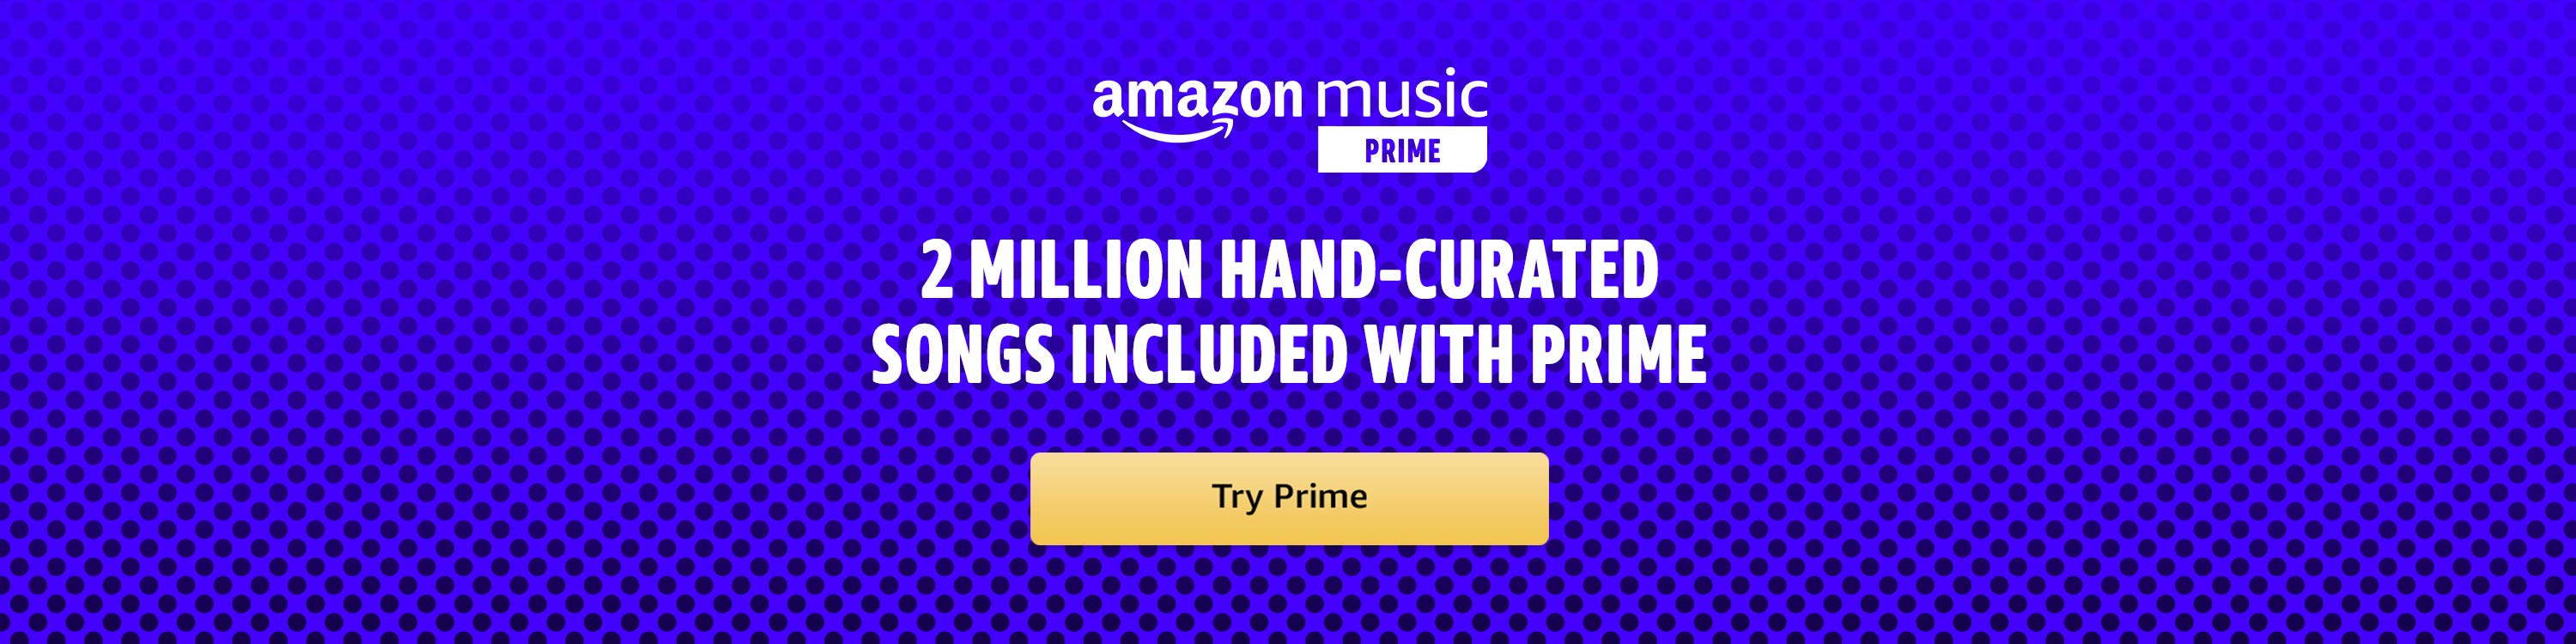 Amazon Music Prime, included with Prime, Access 2 million hand-curated songs, Try Prime